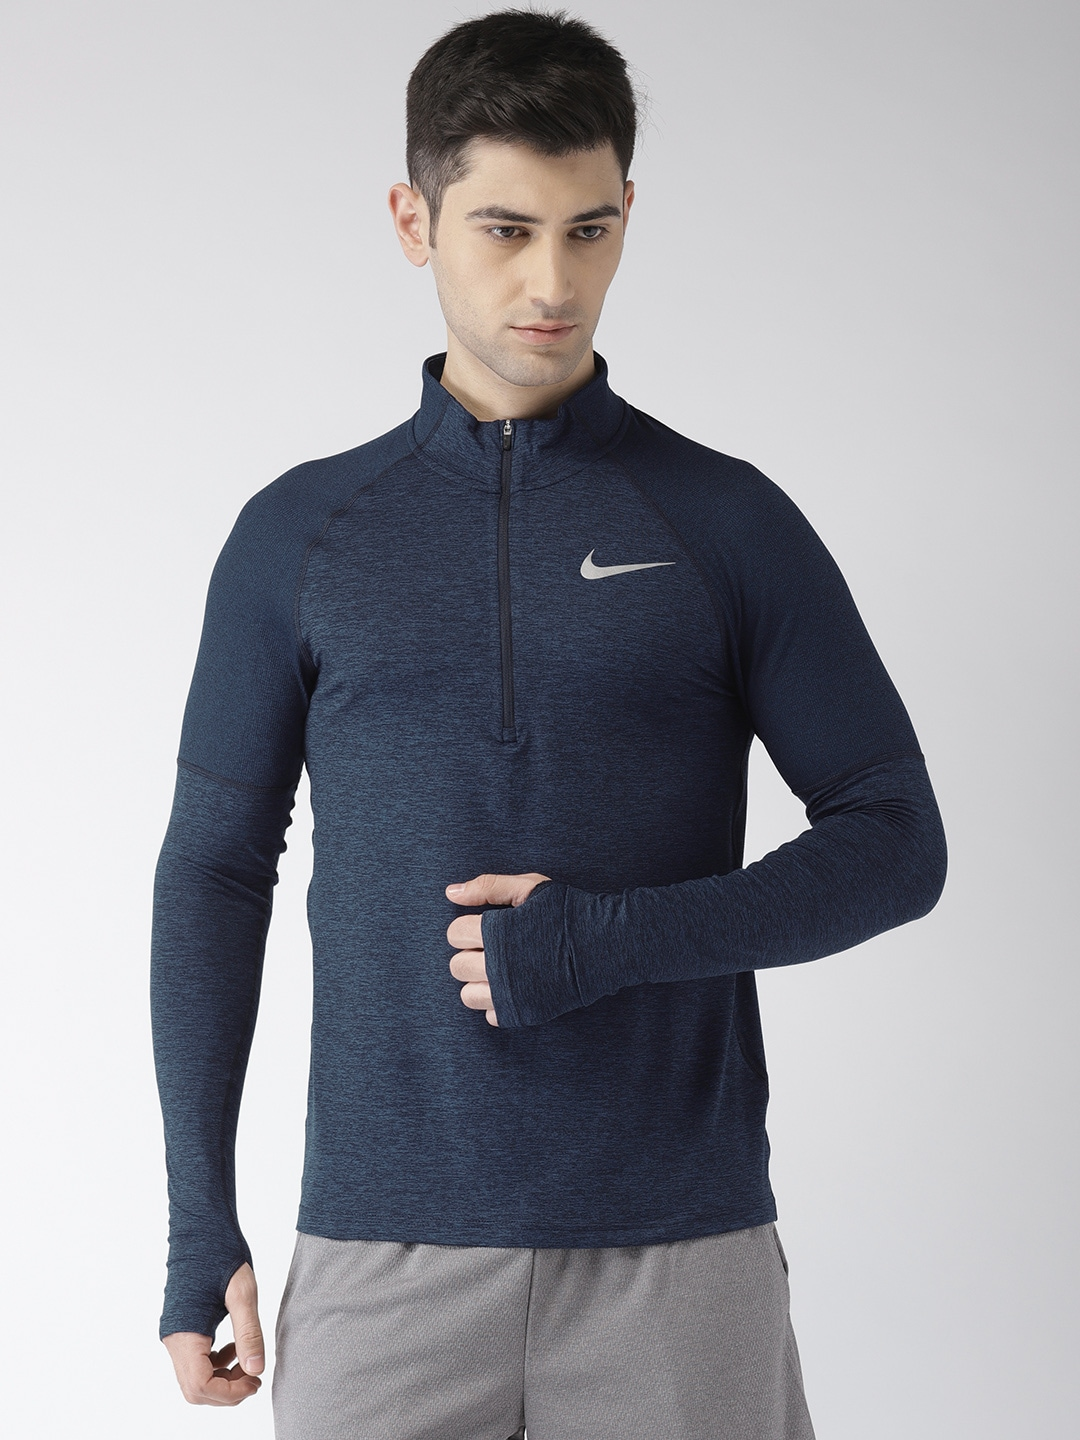 fb4e080b202 Nike High Neck - Buy Nike High Neck online in India